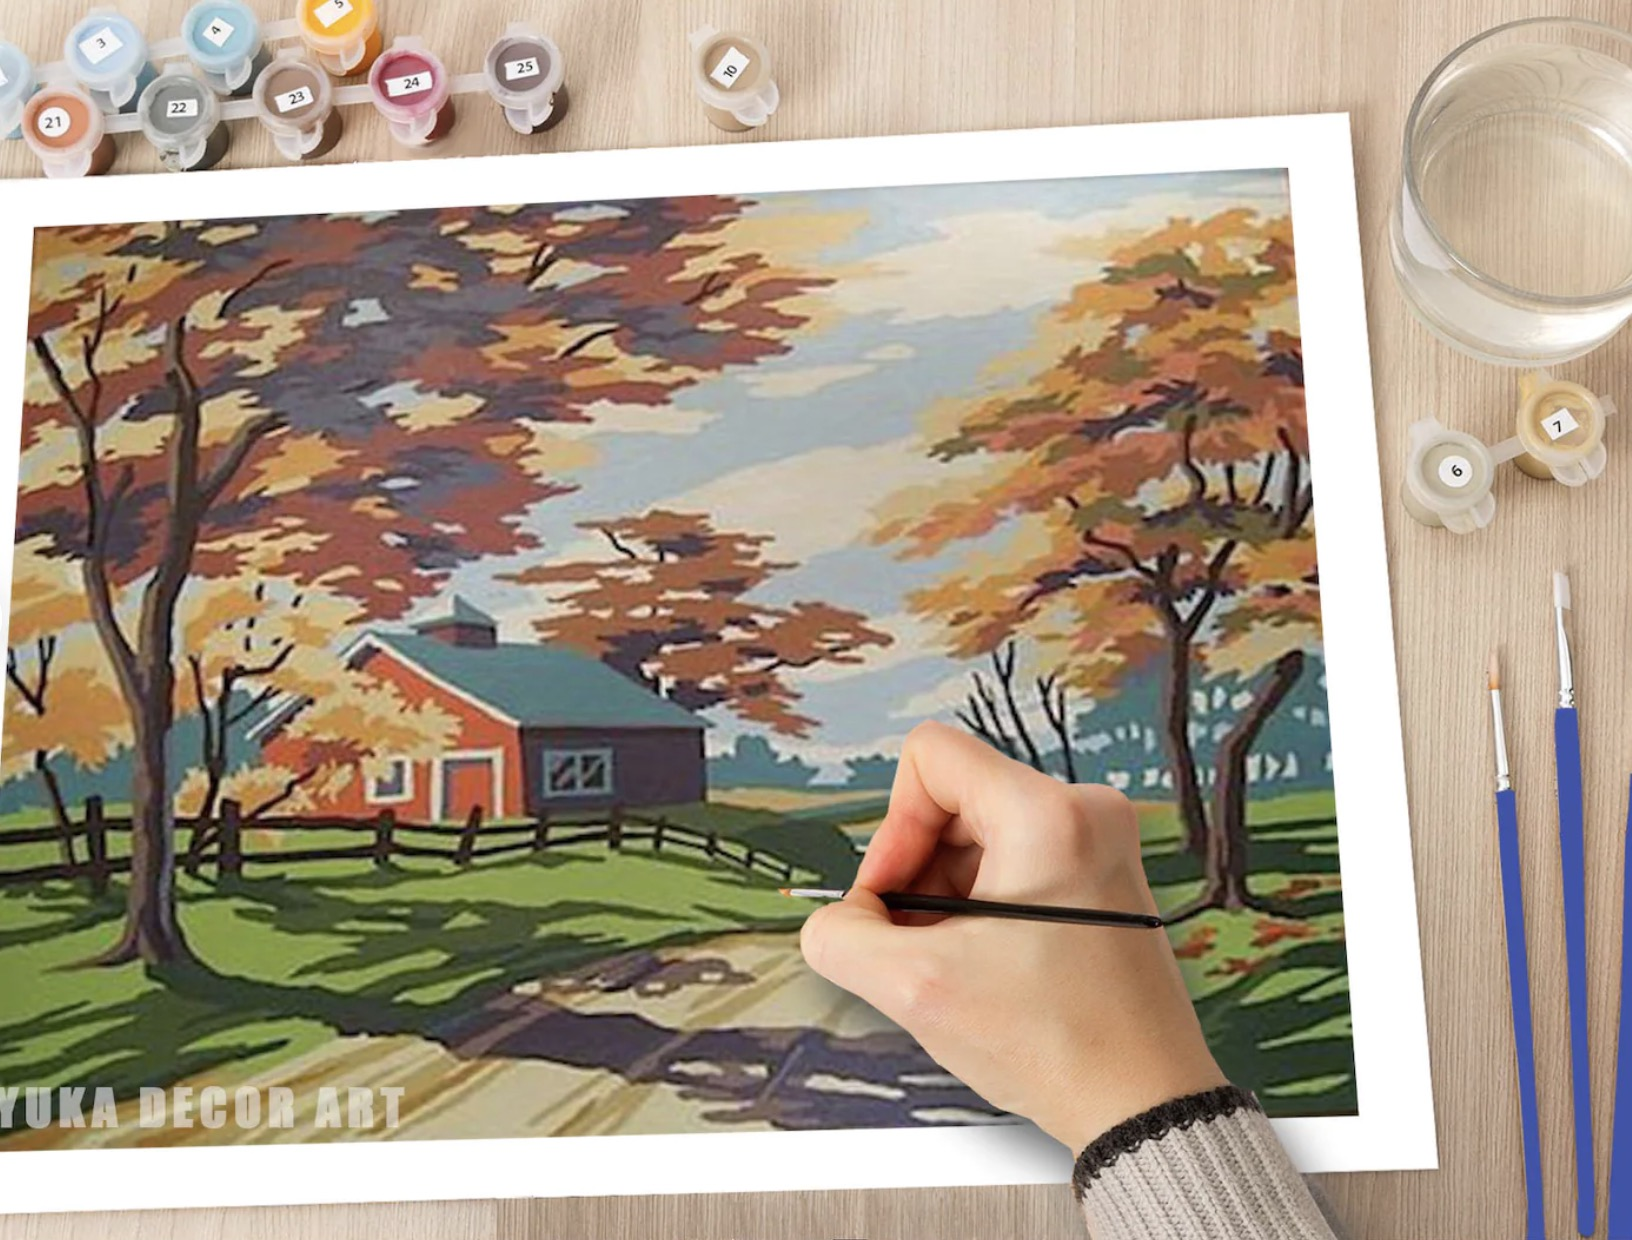 best paint by numbers kits for adults 2021